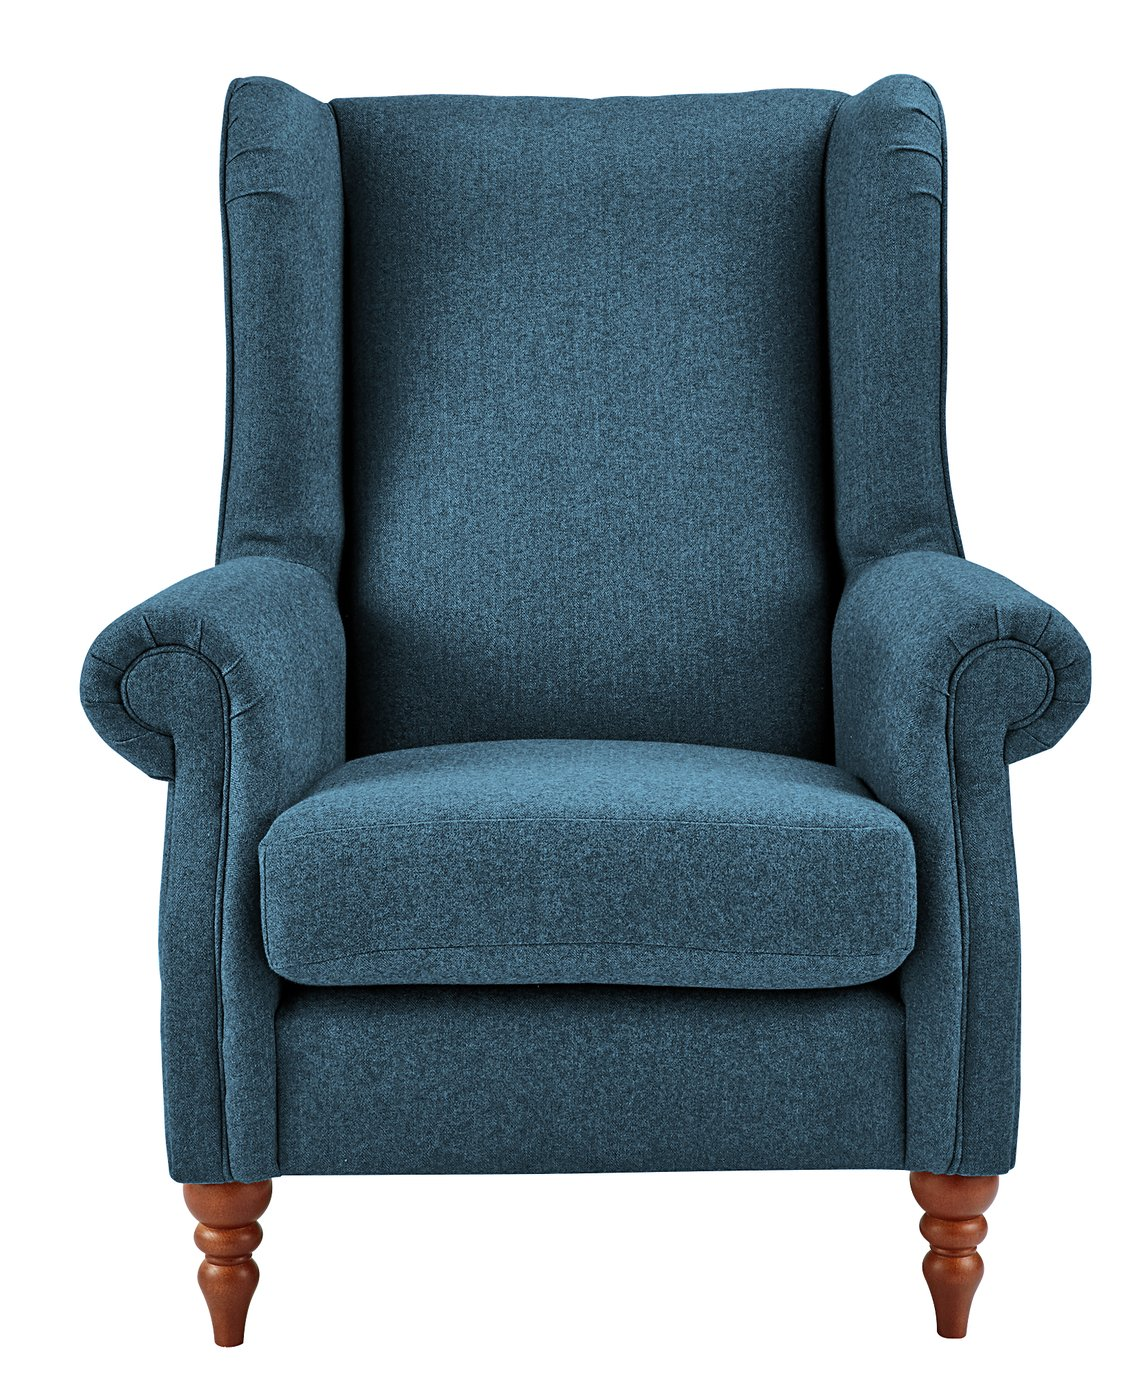 Heart of House Argyll Tweed Fabric Chair - Blue